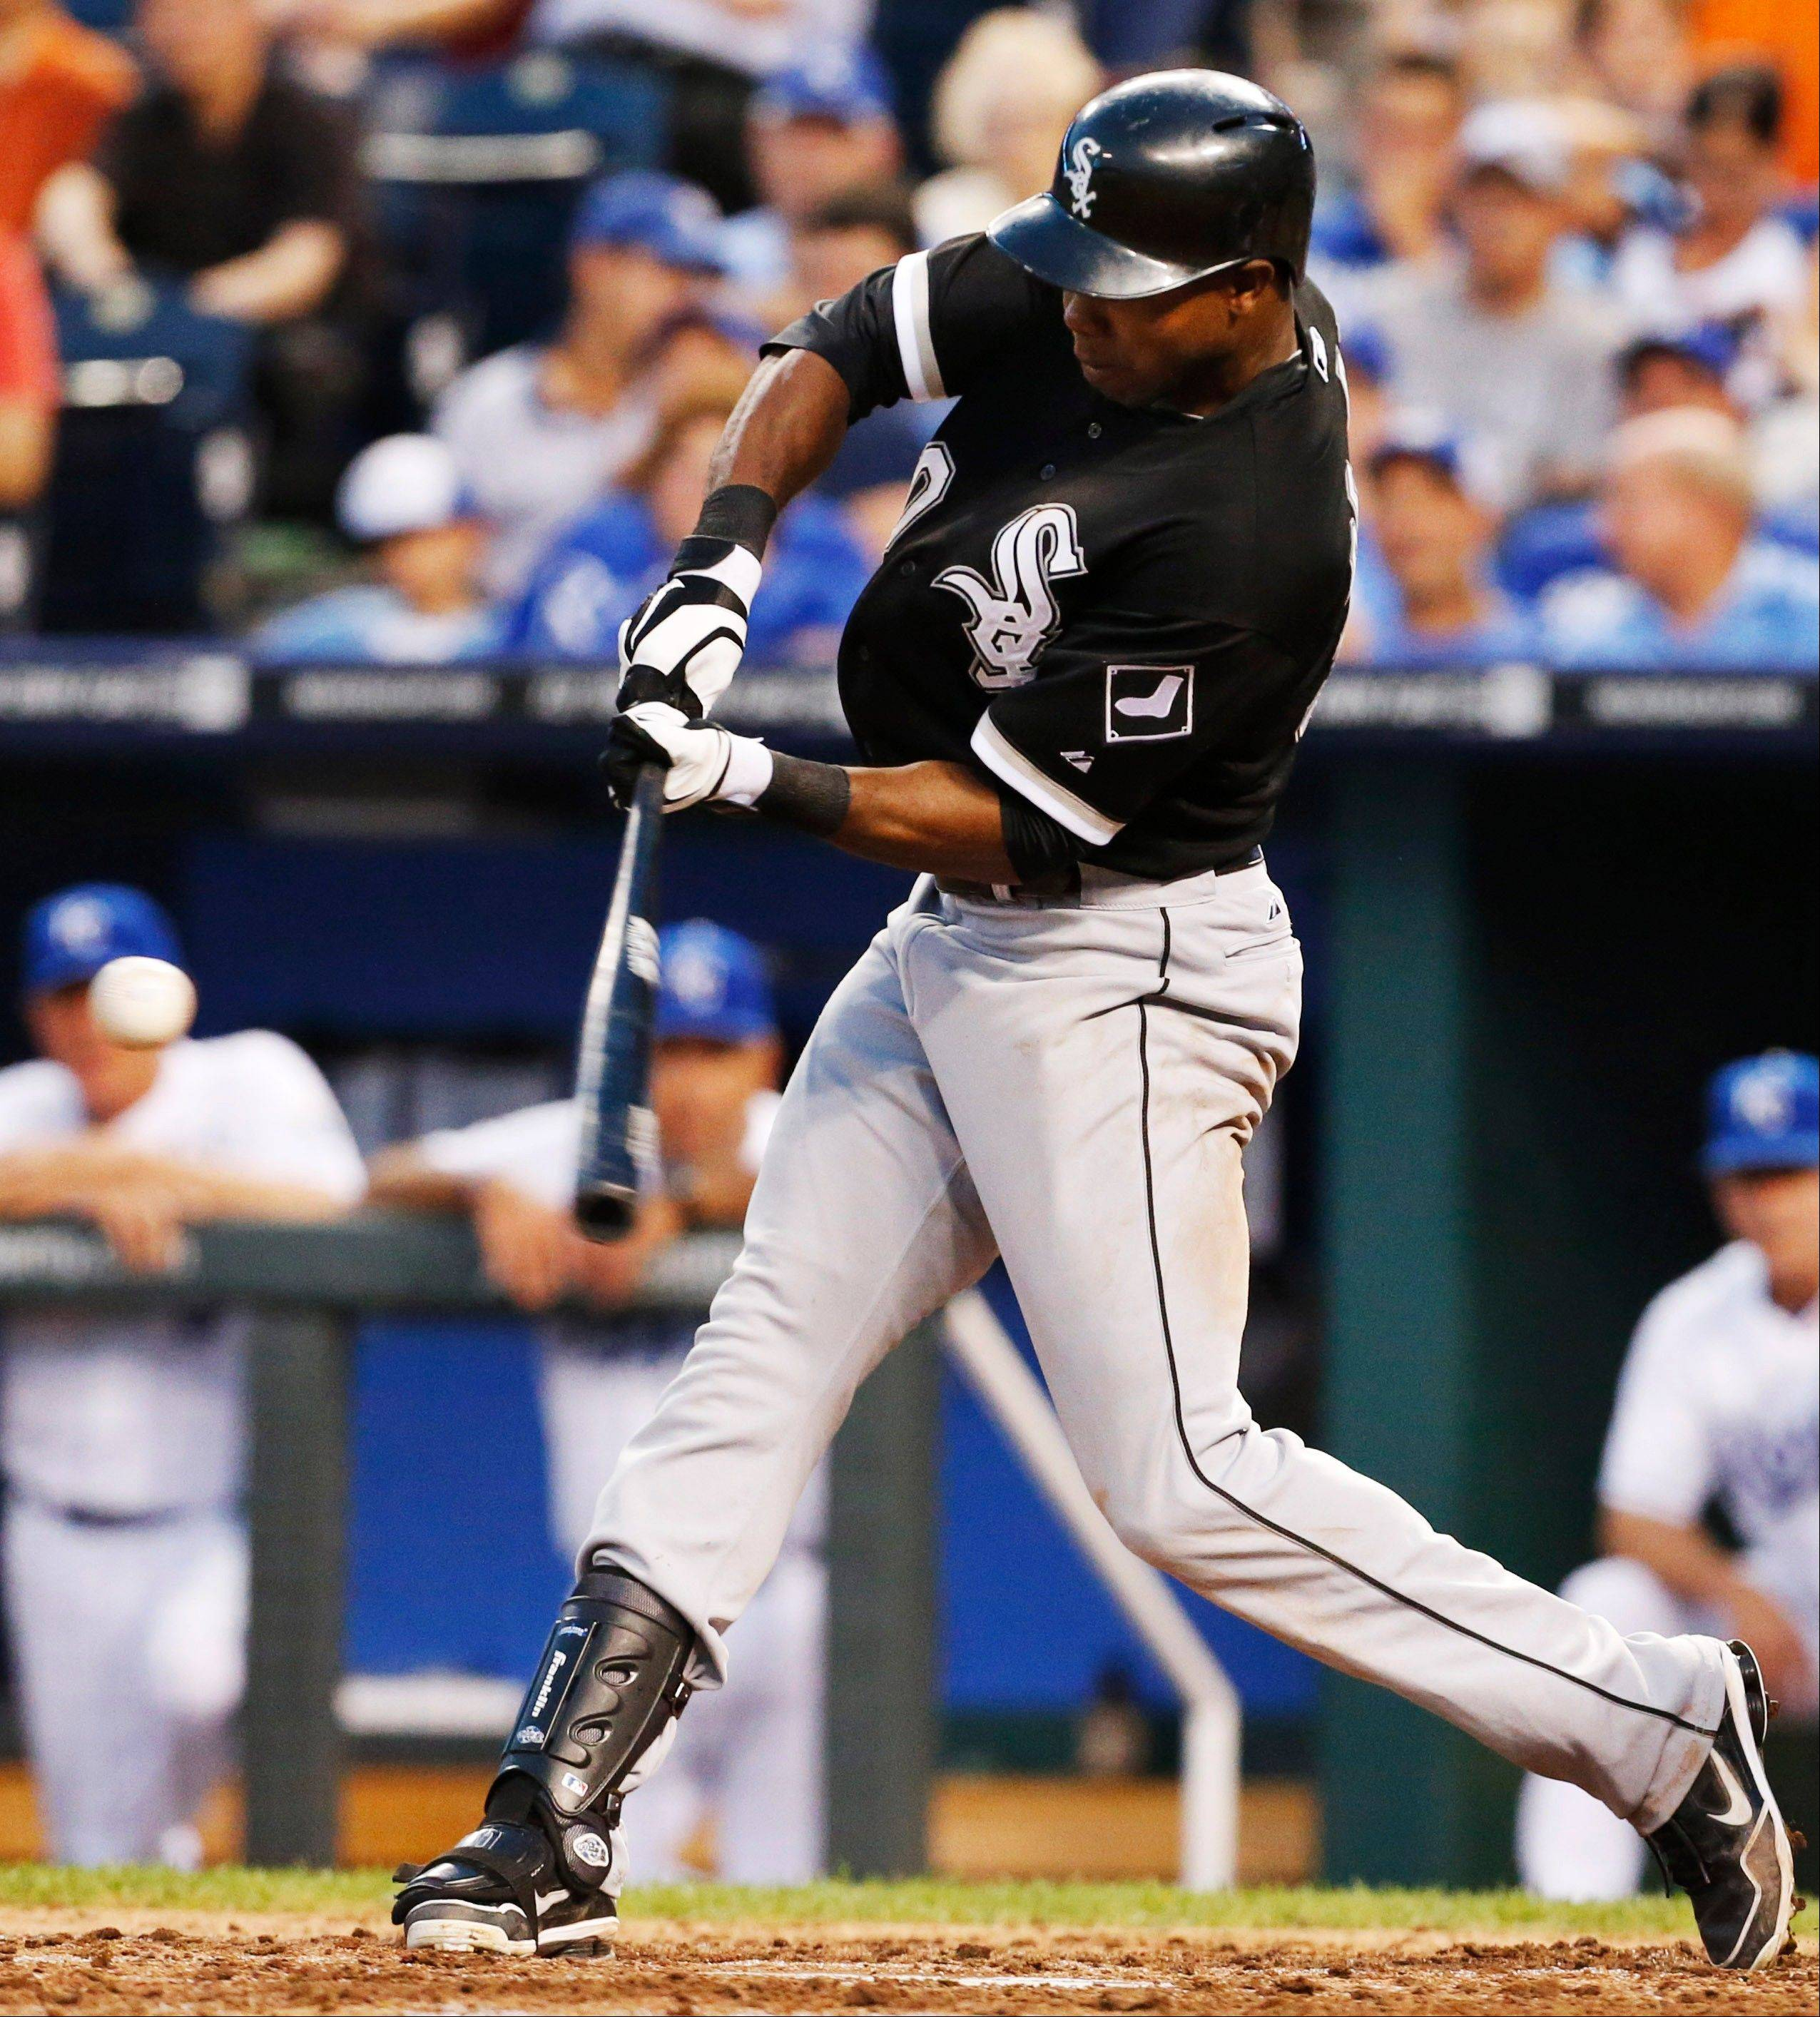 Chicago White Sox's Alejandro De Aza hits a two-run home run off Kansas City Royals relief pitcher Bruce Chen during the sixth inning of a baseball game at Kauffman Stadium in Kansas City, Mo., Friday, June 21, 2013.